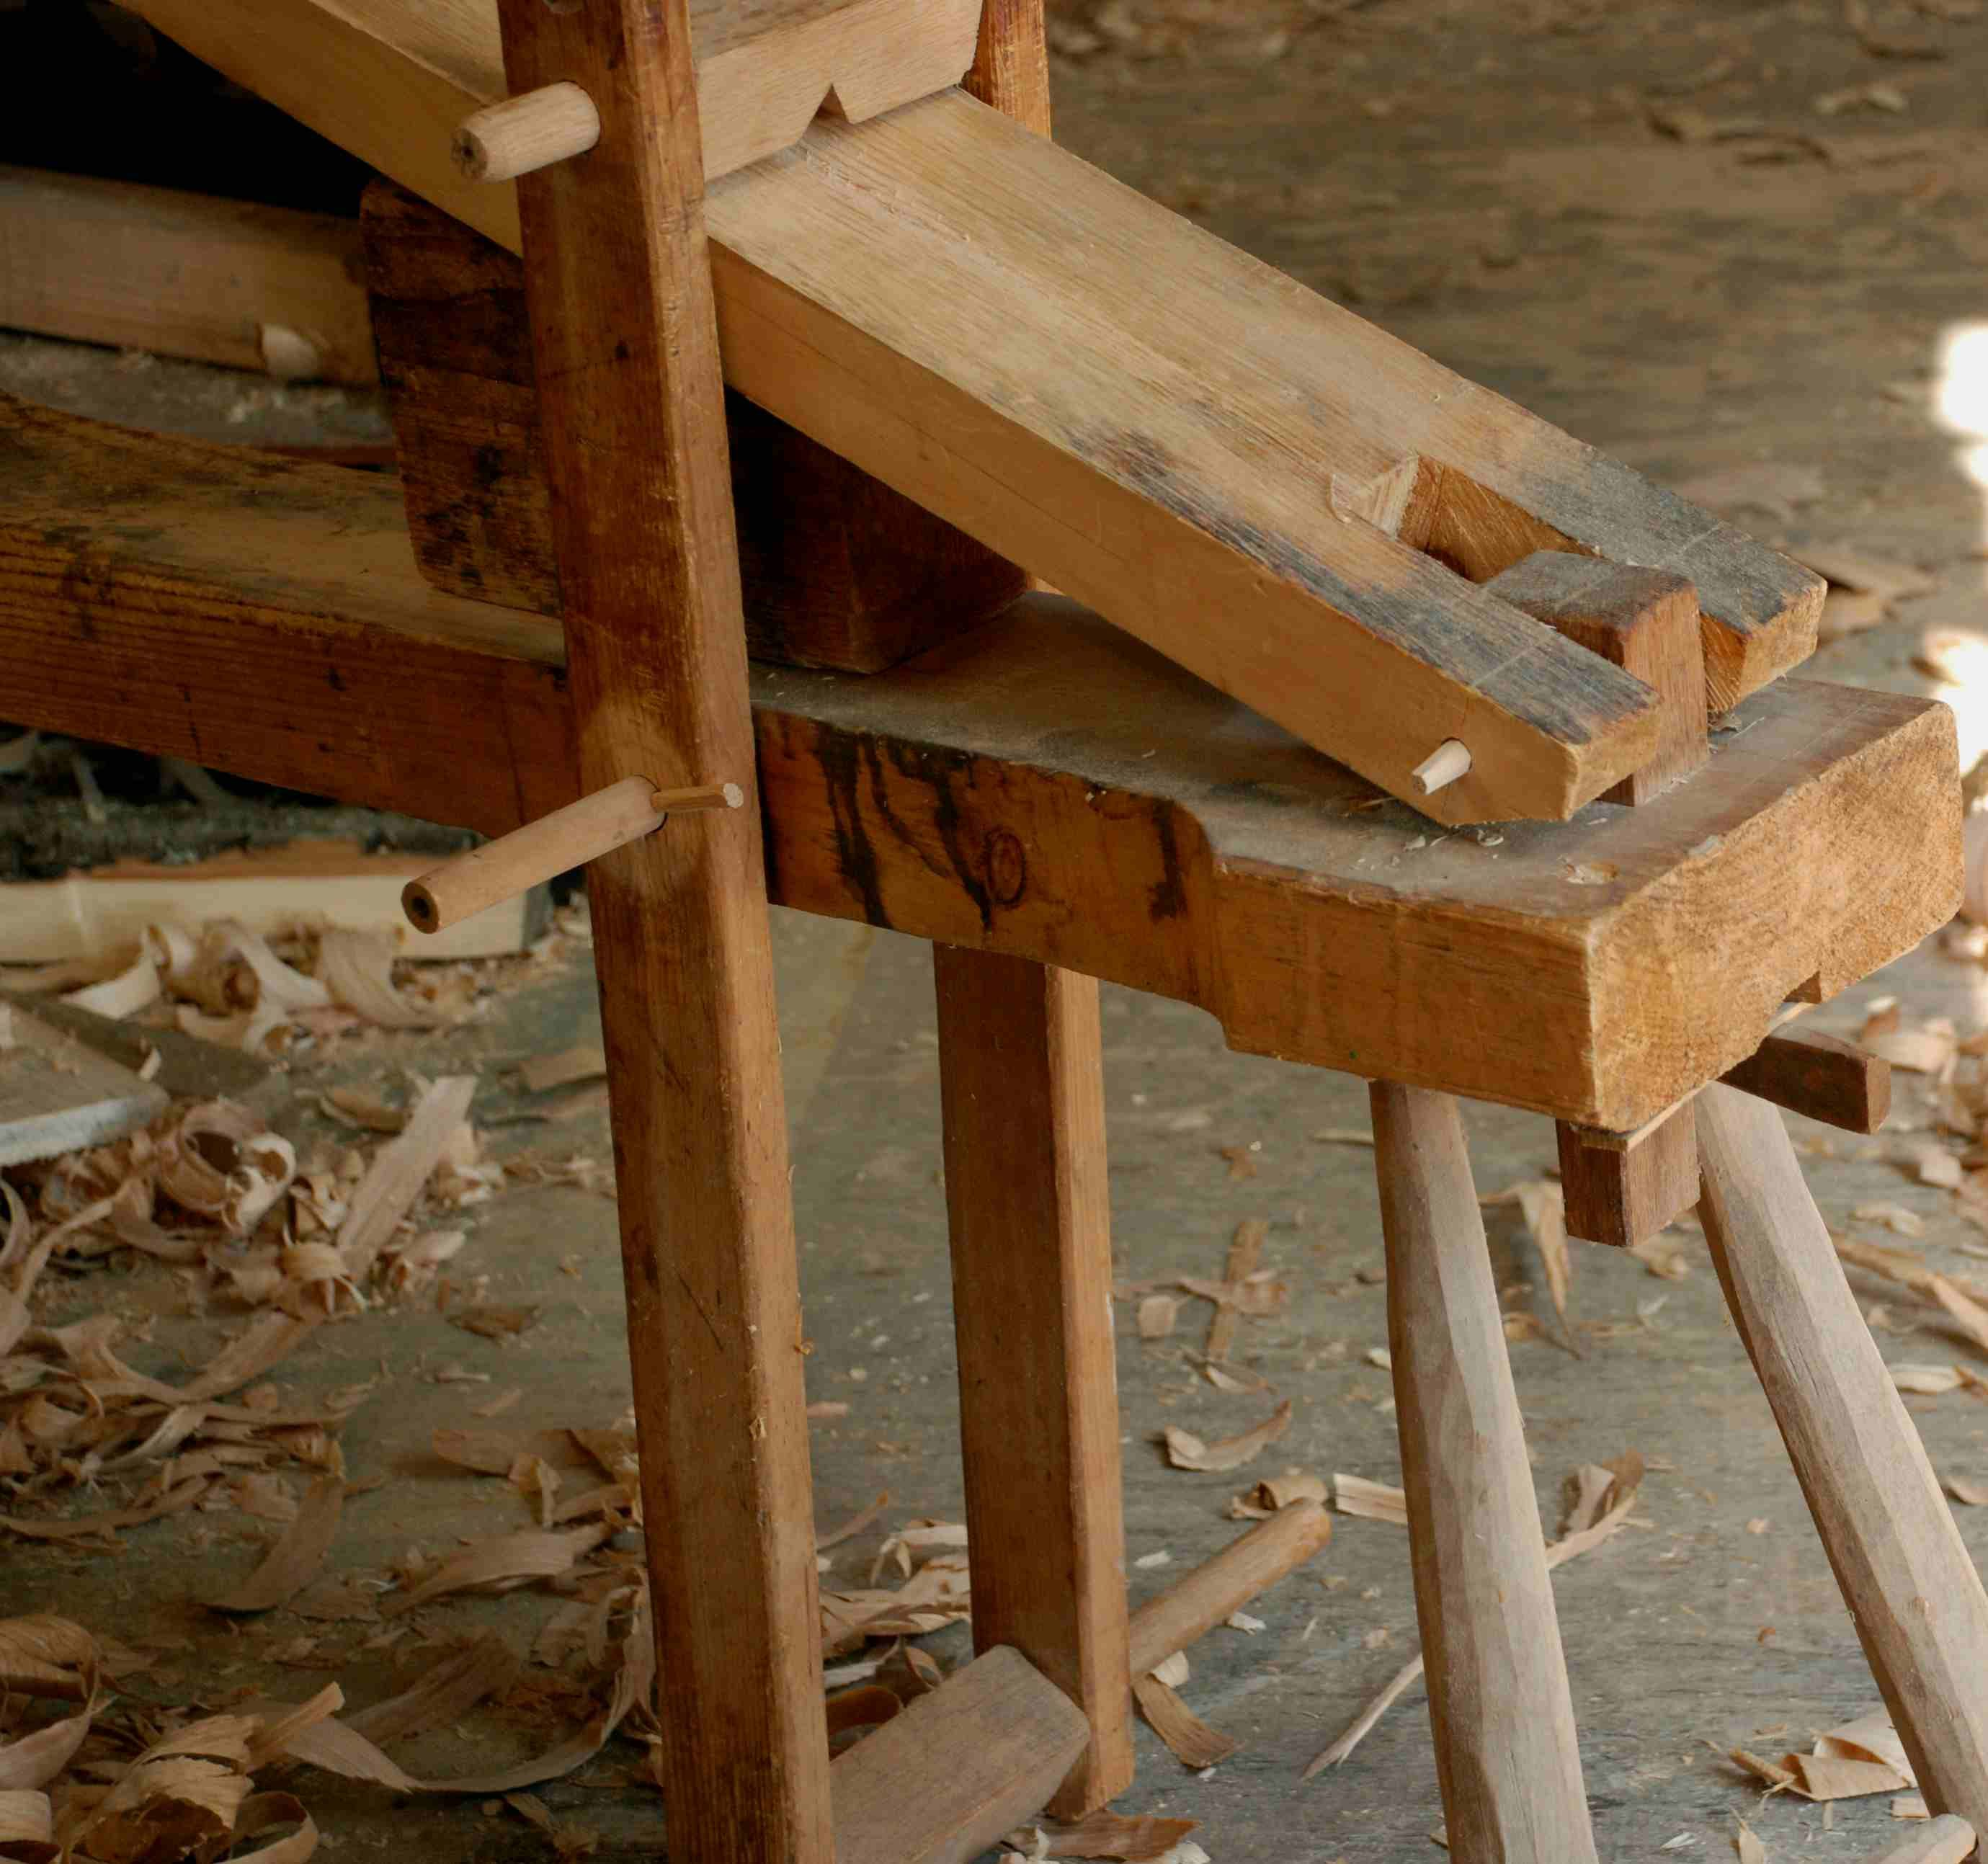 shaving horse bench Google Search Diy wooden projects